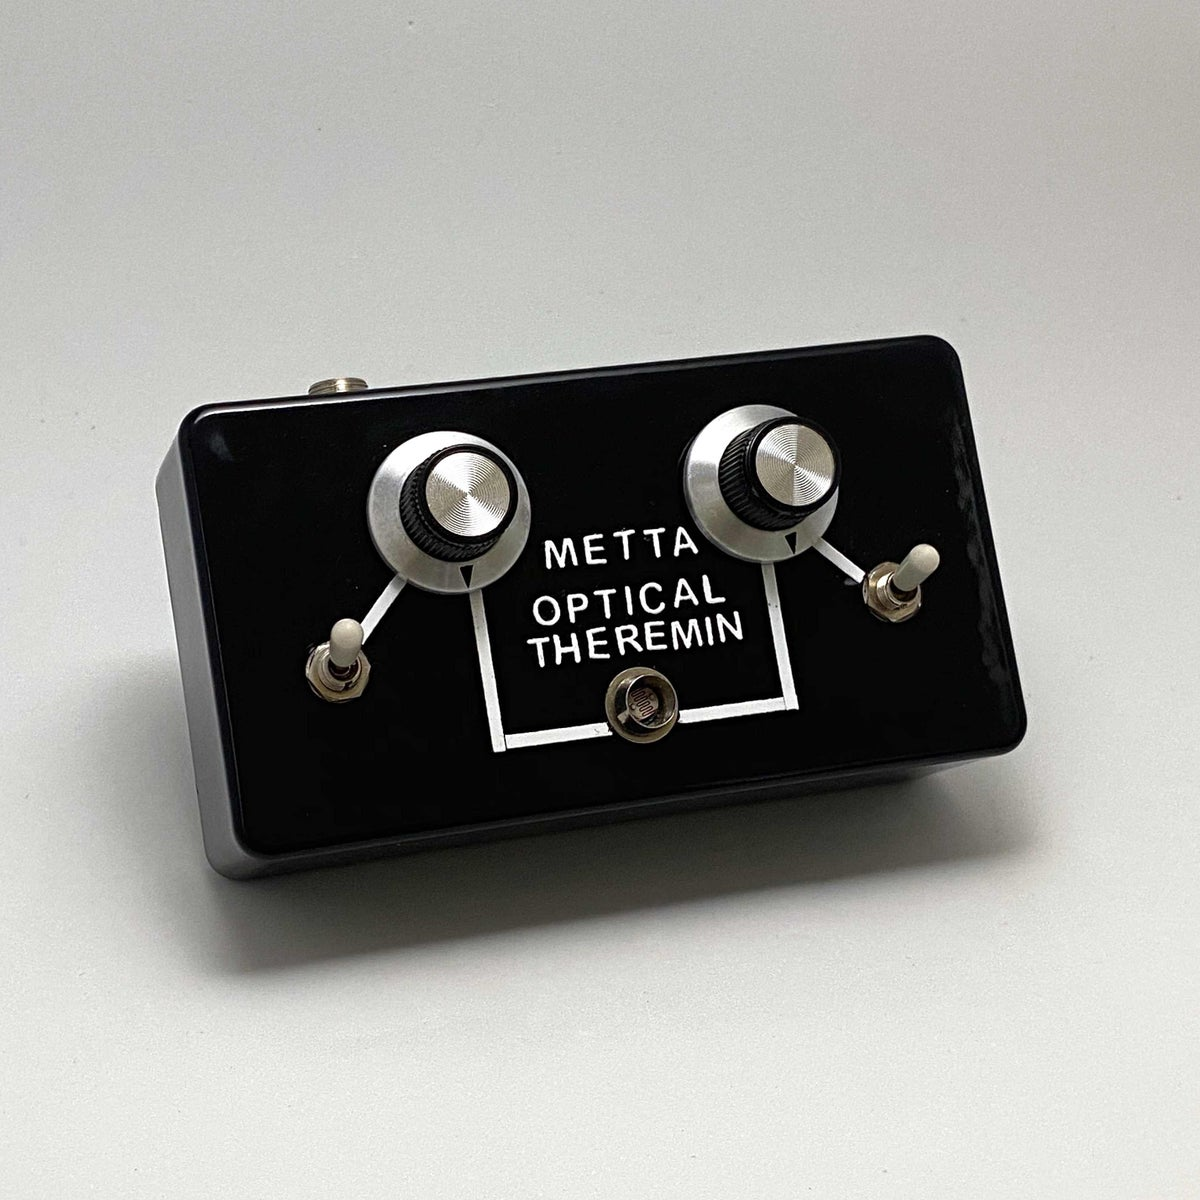 Image of Metta Optical Theremin / Light Controlled Noise Synth